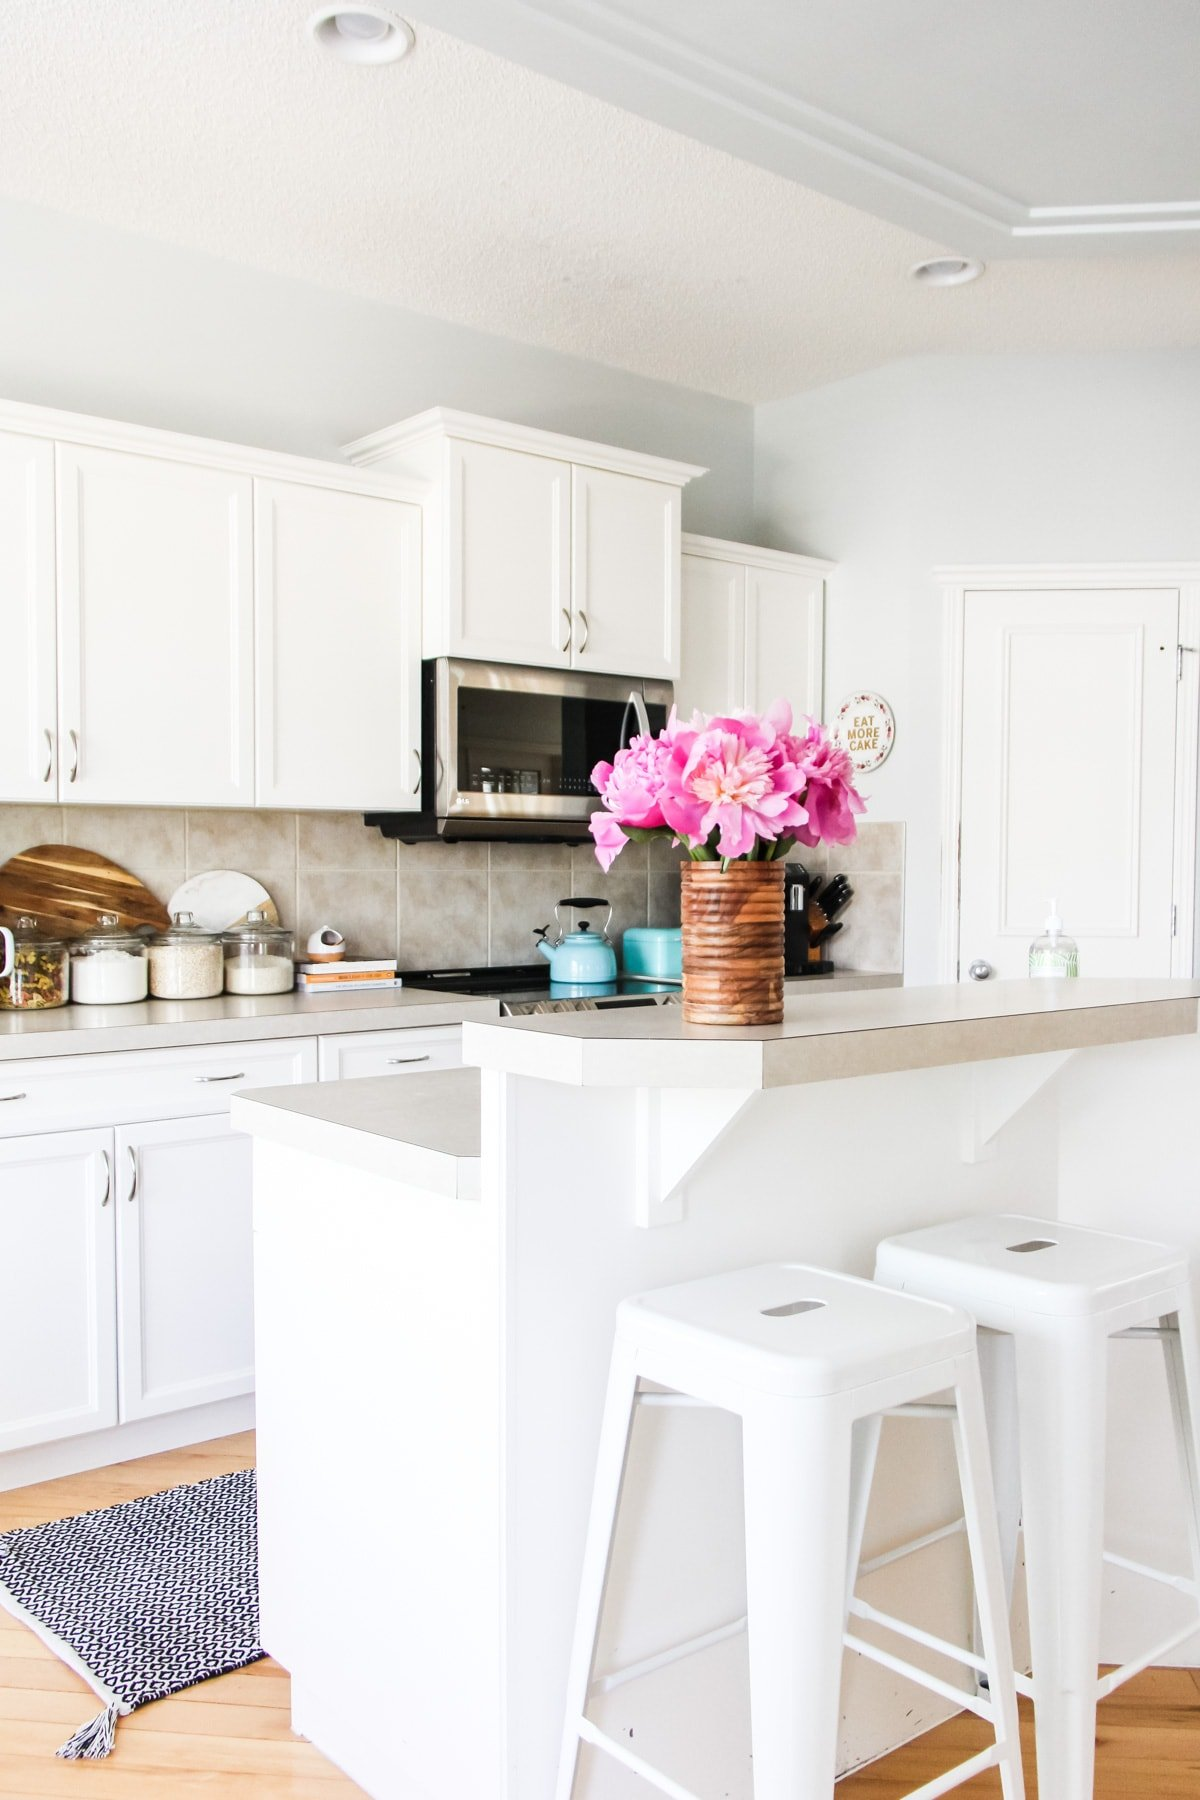 a white kitchen with white cupboards and white stools. on the counter is a wooden vase with pink peonies